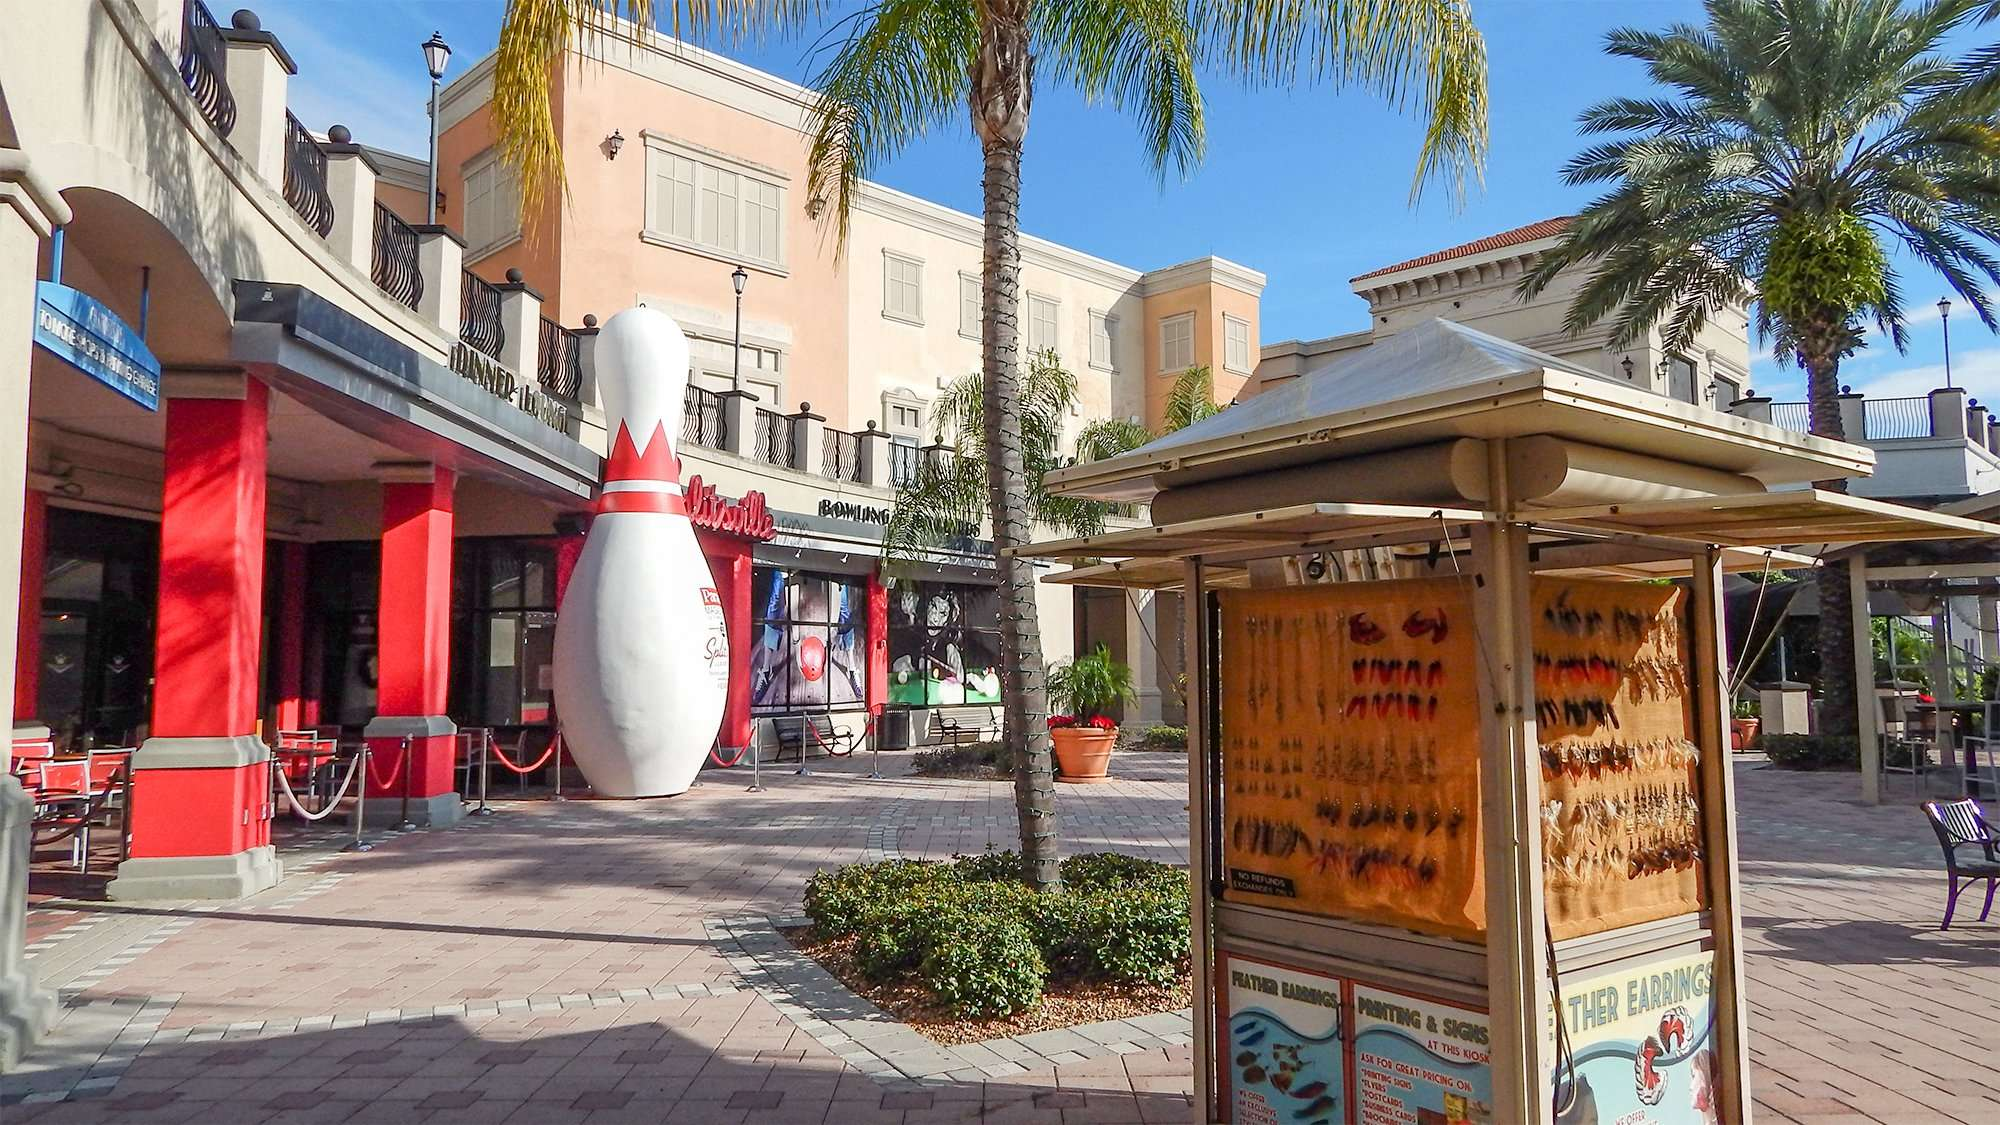 100 home design plaza ta fl greeting card stationery store channelside bay plaza upscale strip mall with a view photo